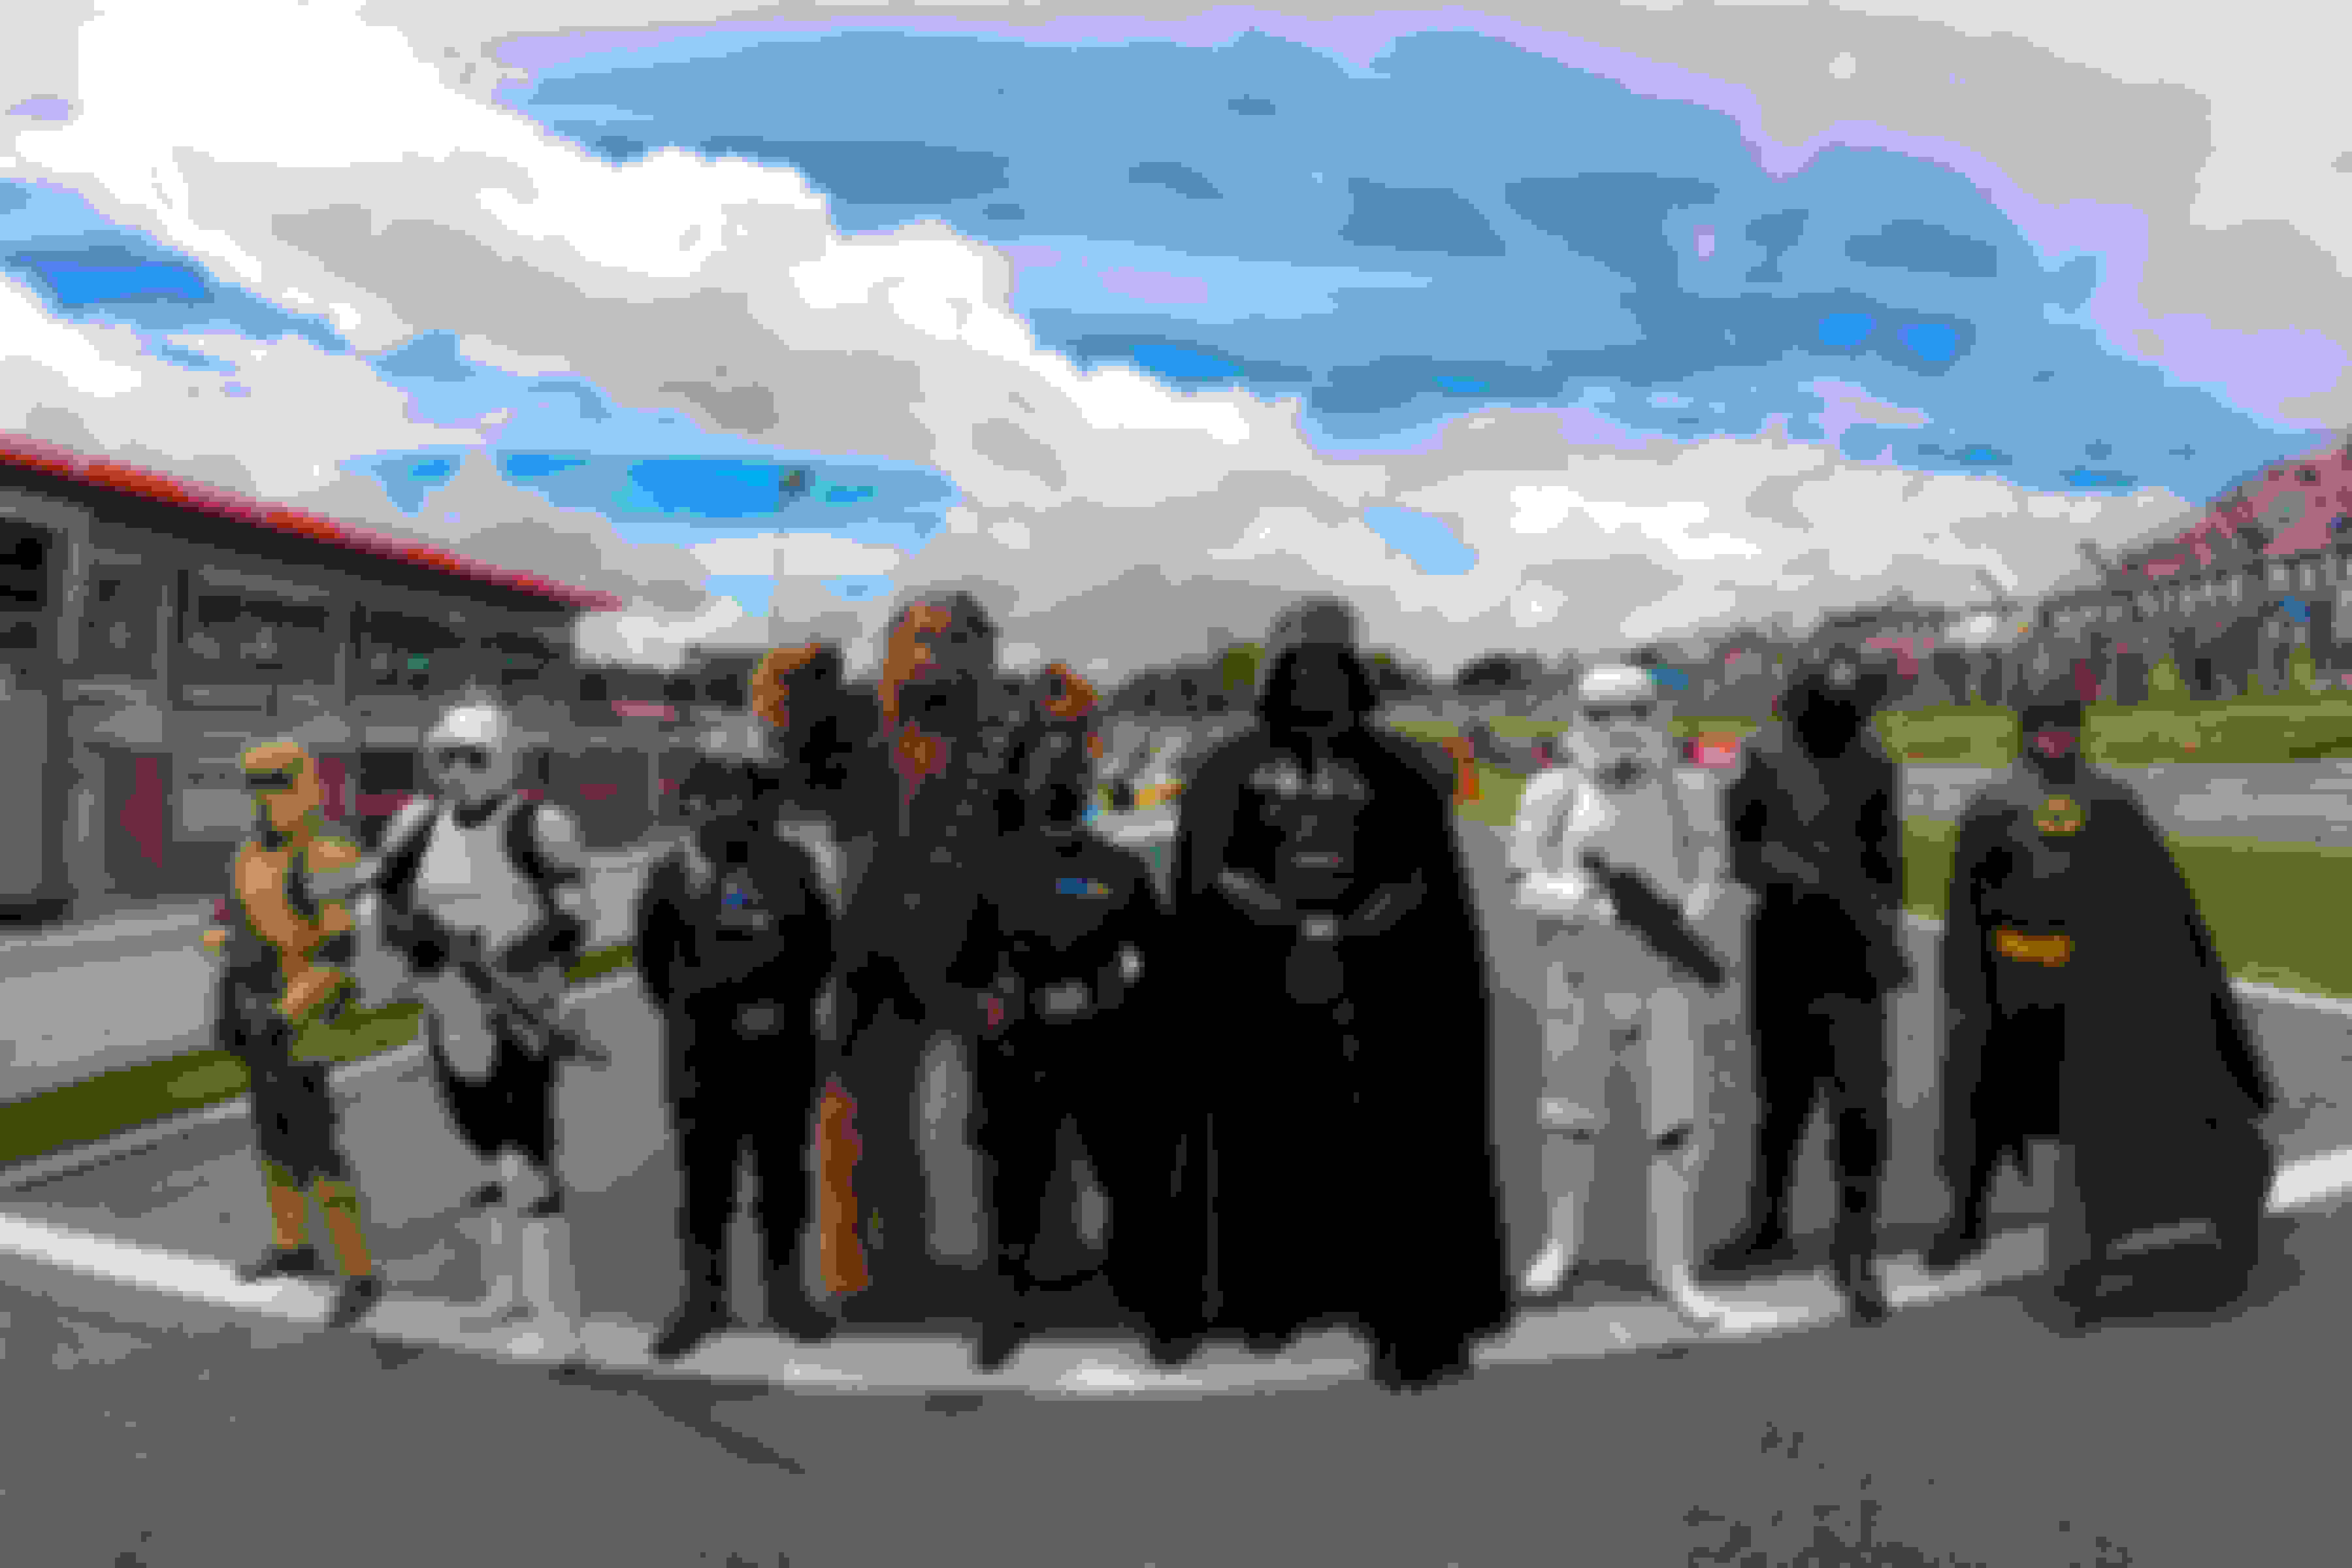 Star Wars and Marvel characters - SUNDAY